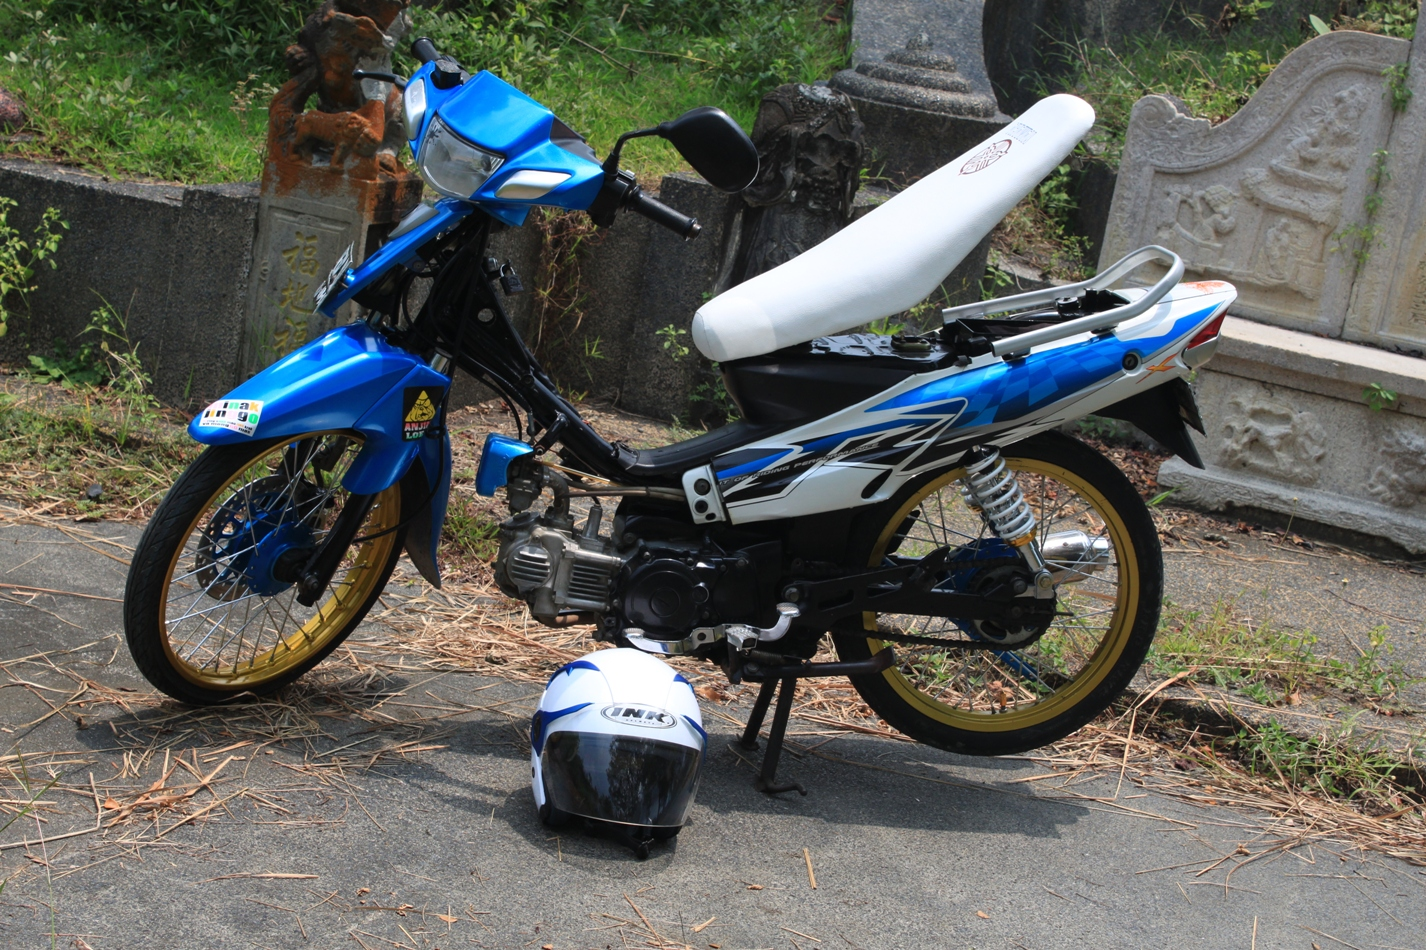 Modifikasi+motor.jpg